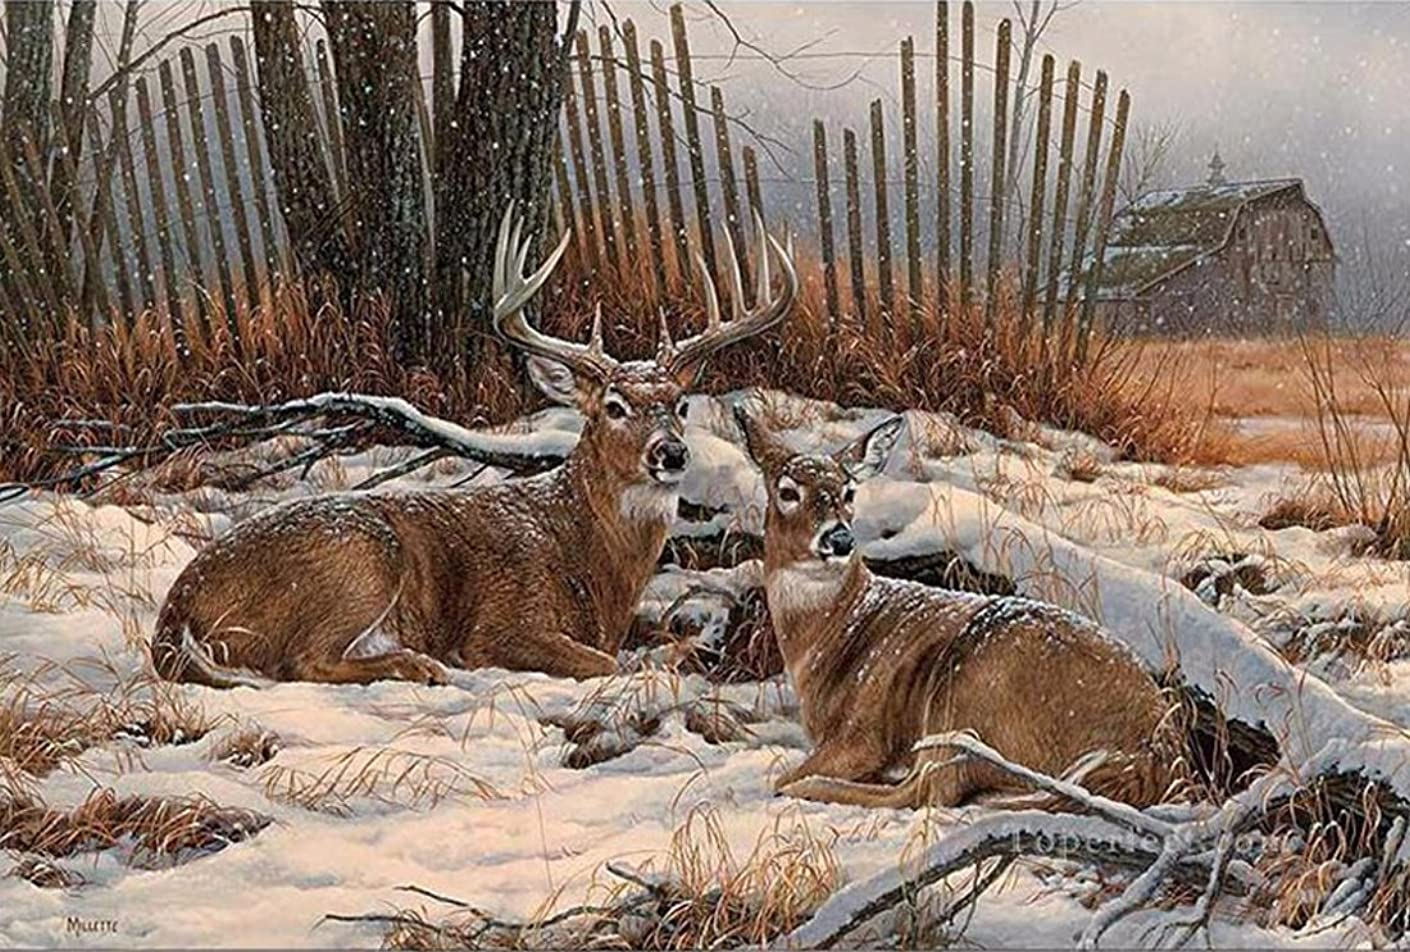 21secret 5D Diamond Diy Painting Full Drill Handmade White Tailed Deer Couple Rest in the Snow Cross Stitch Home Decor Embroidery Kit